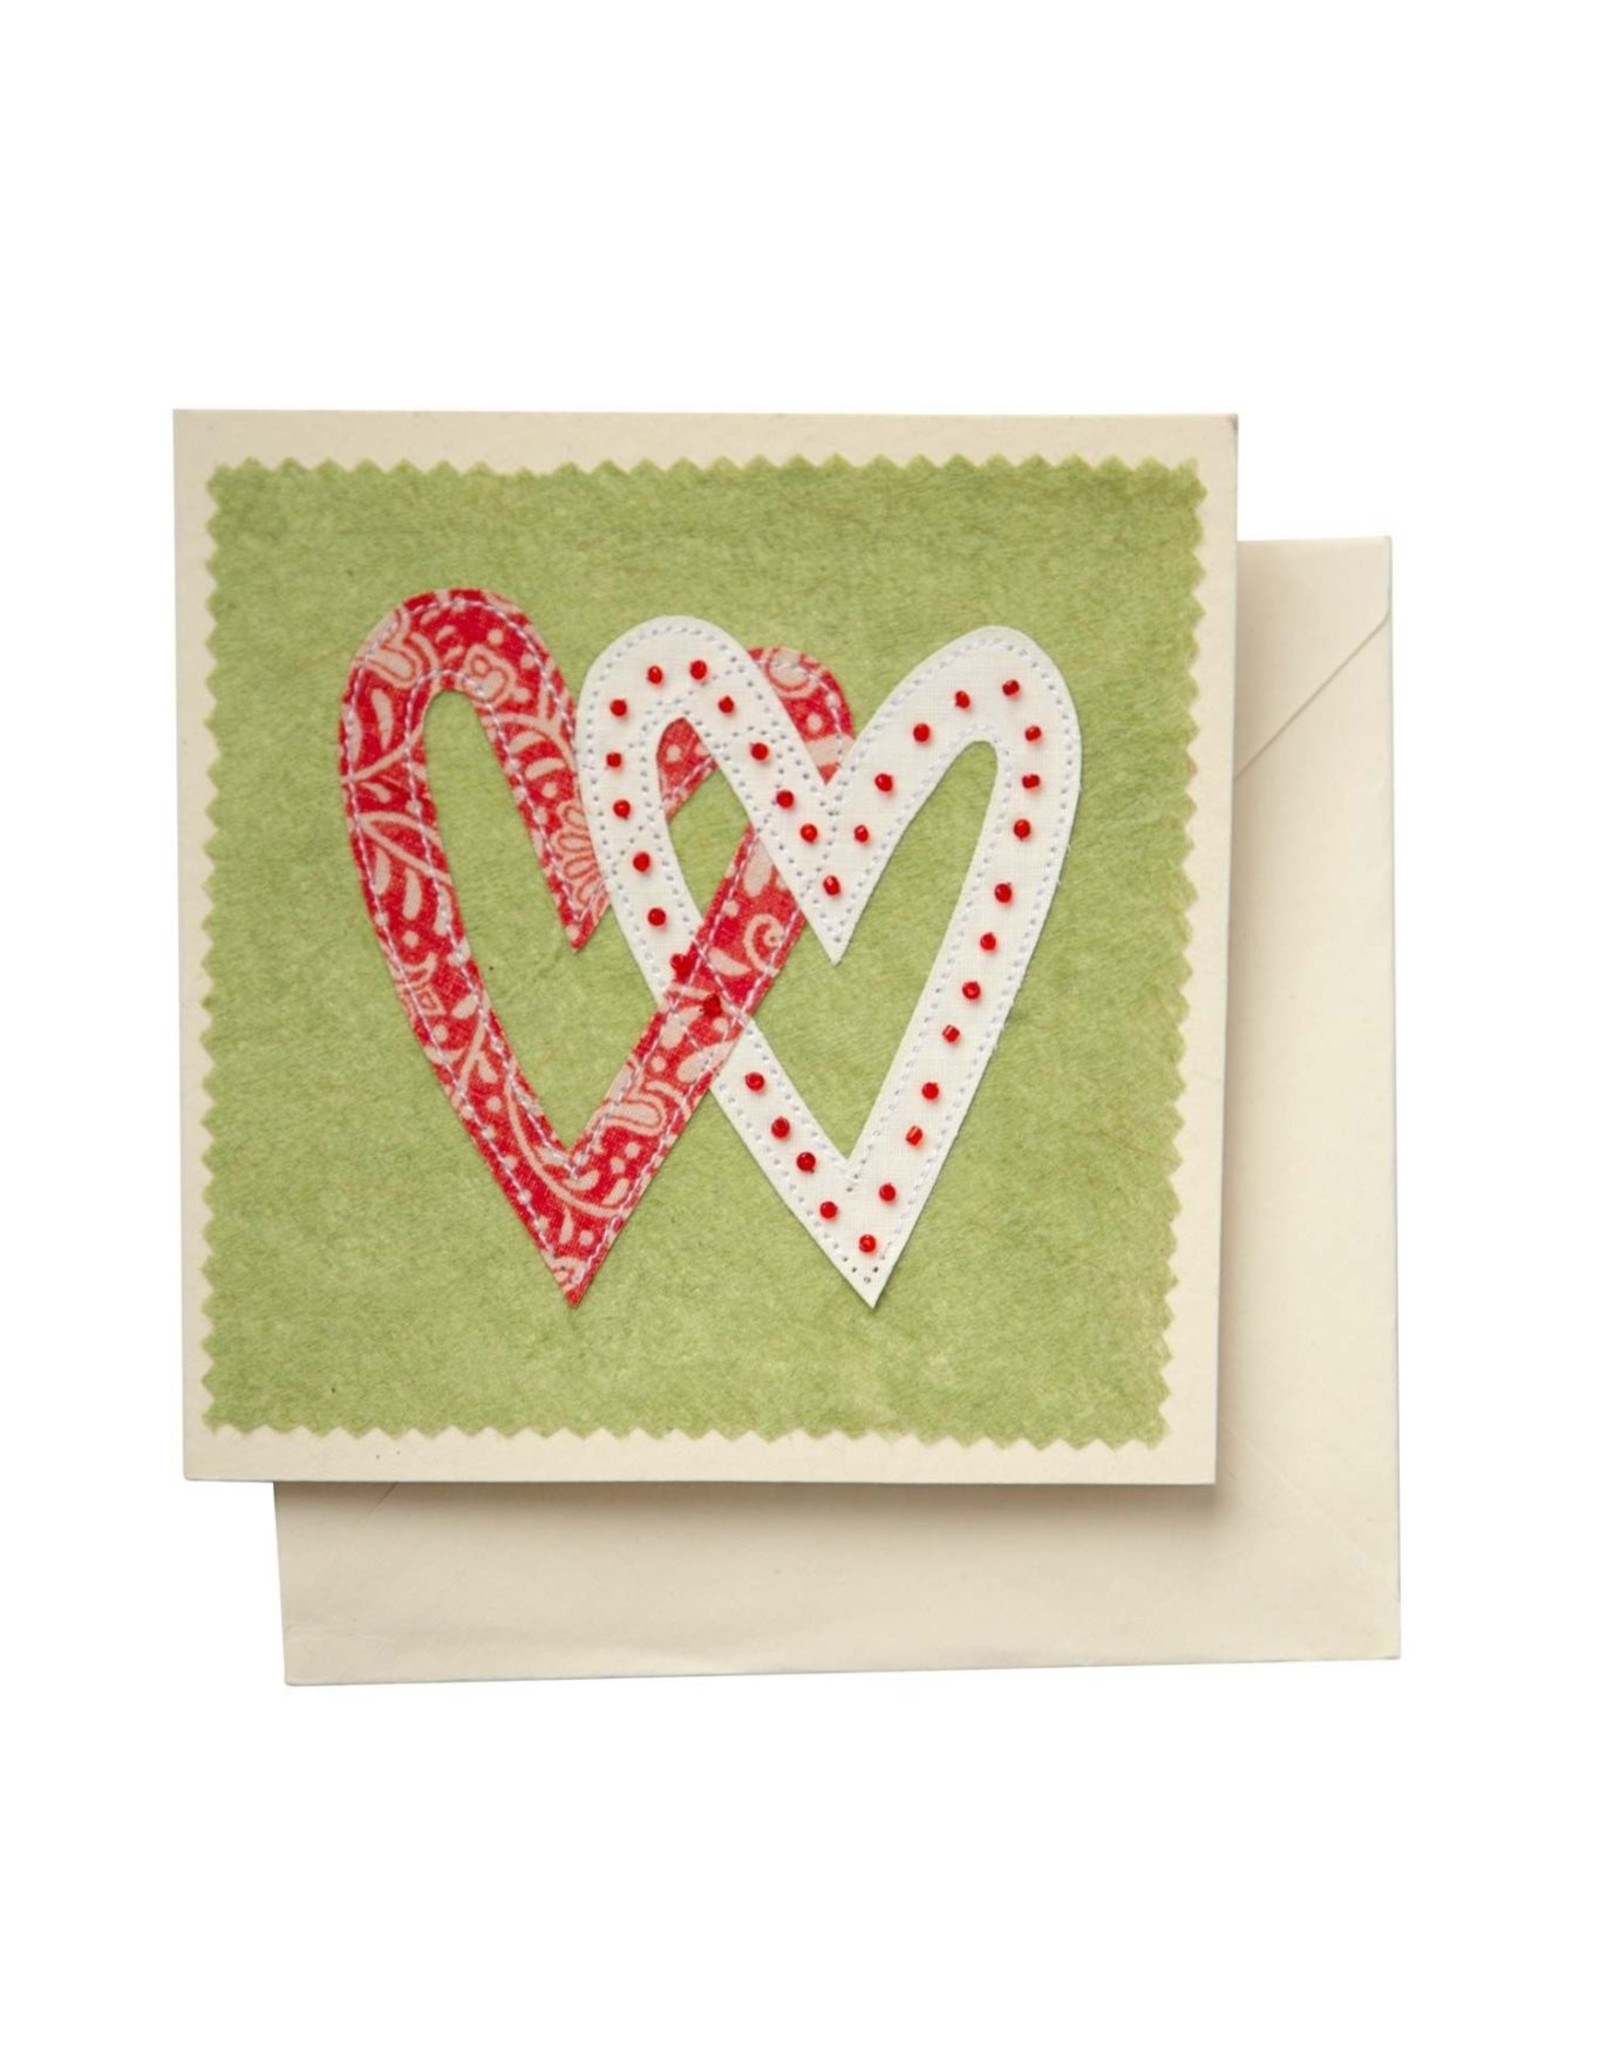 Ten Thousand Villages Linked Hearts Greeting Card